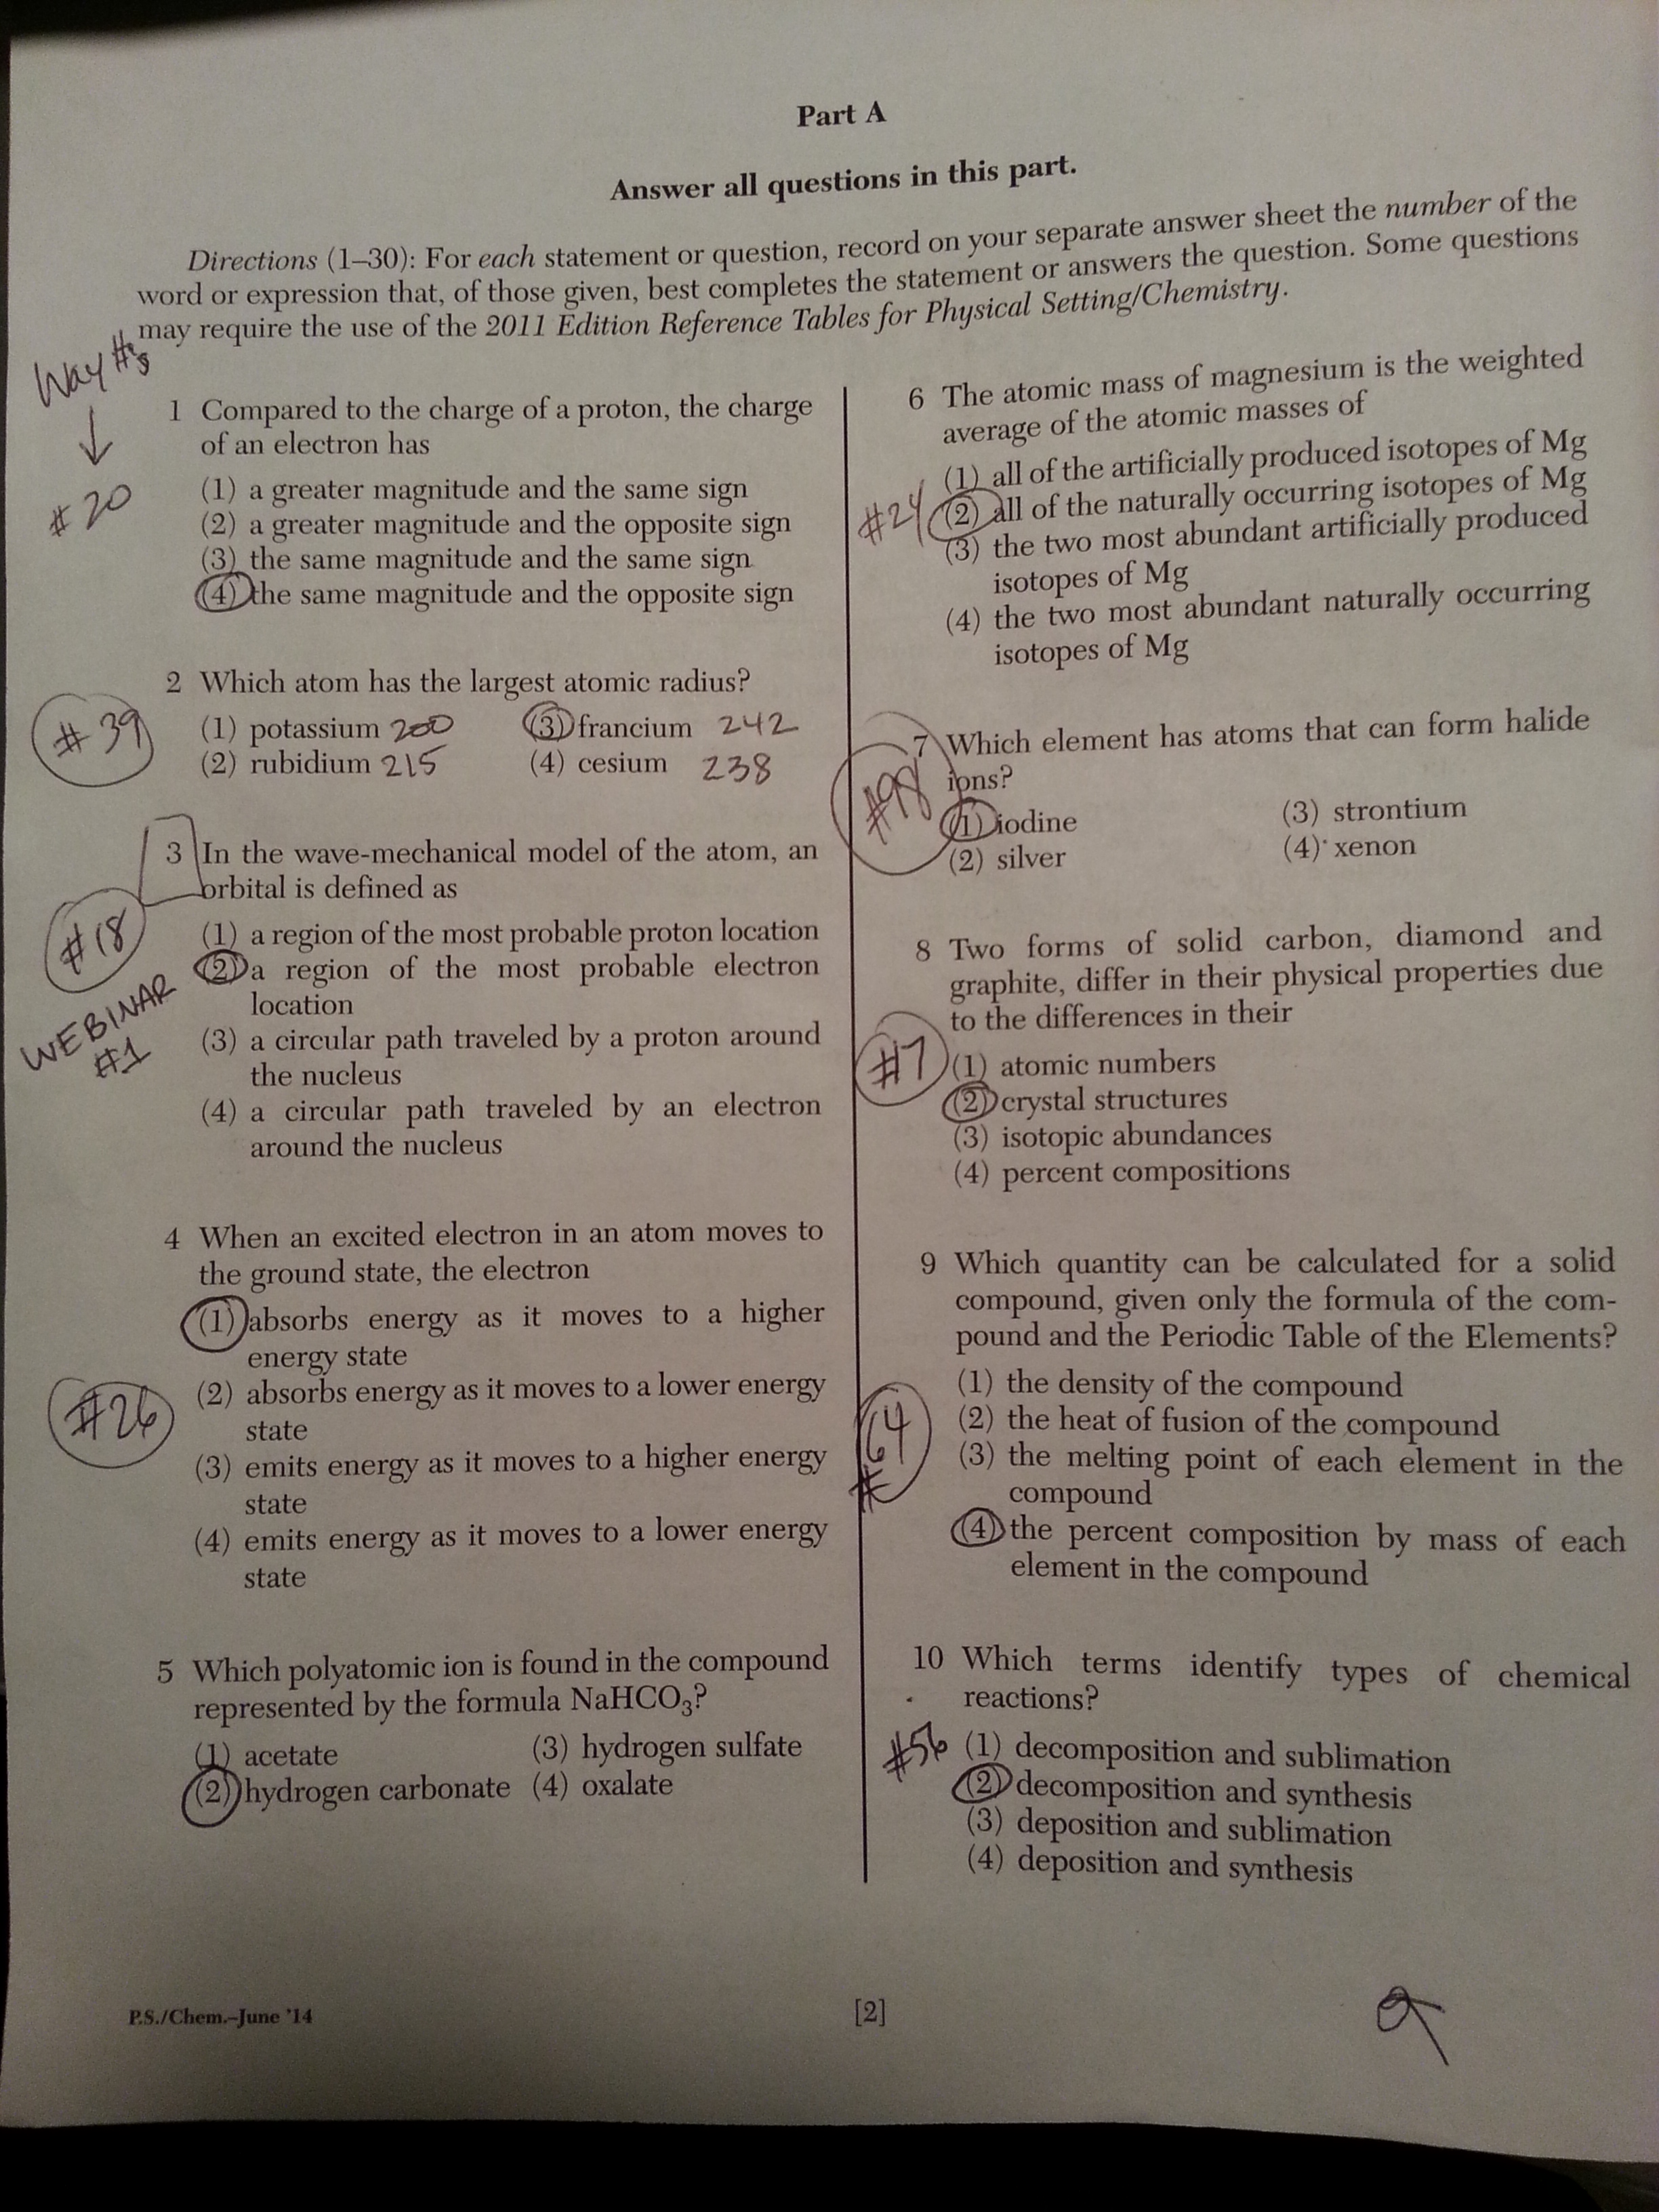 Prentice hall chemistry review book answer key 2015 - Essay help you ...